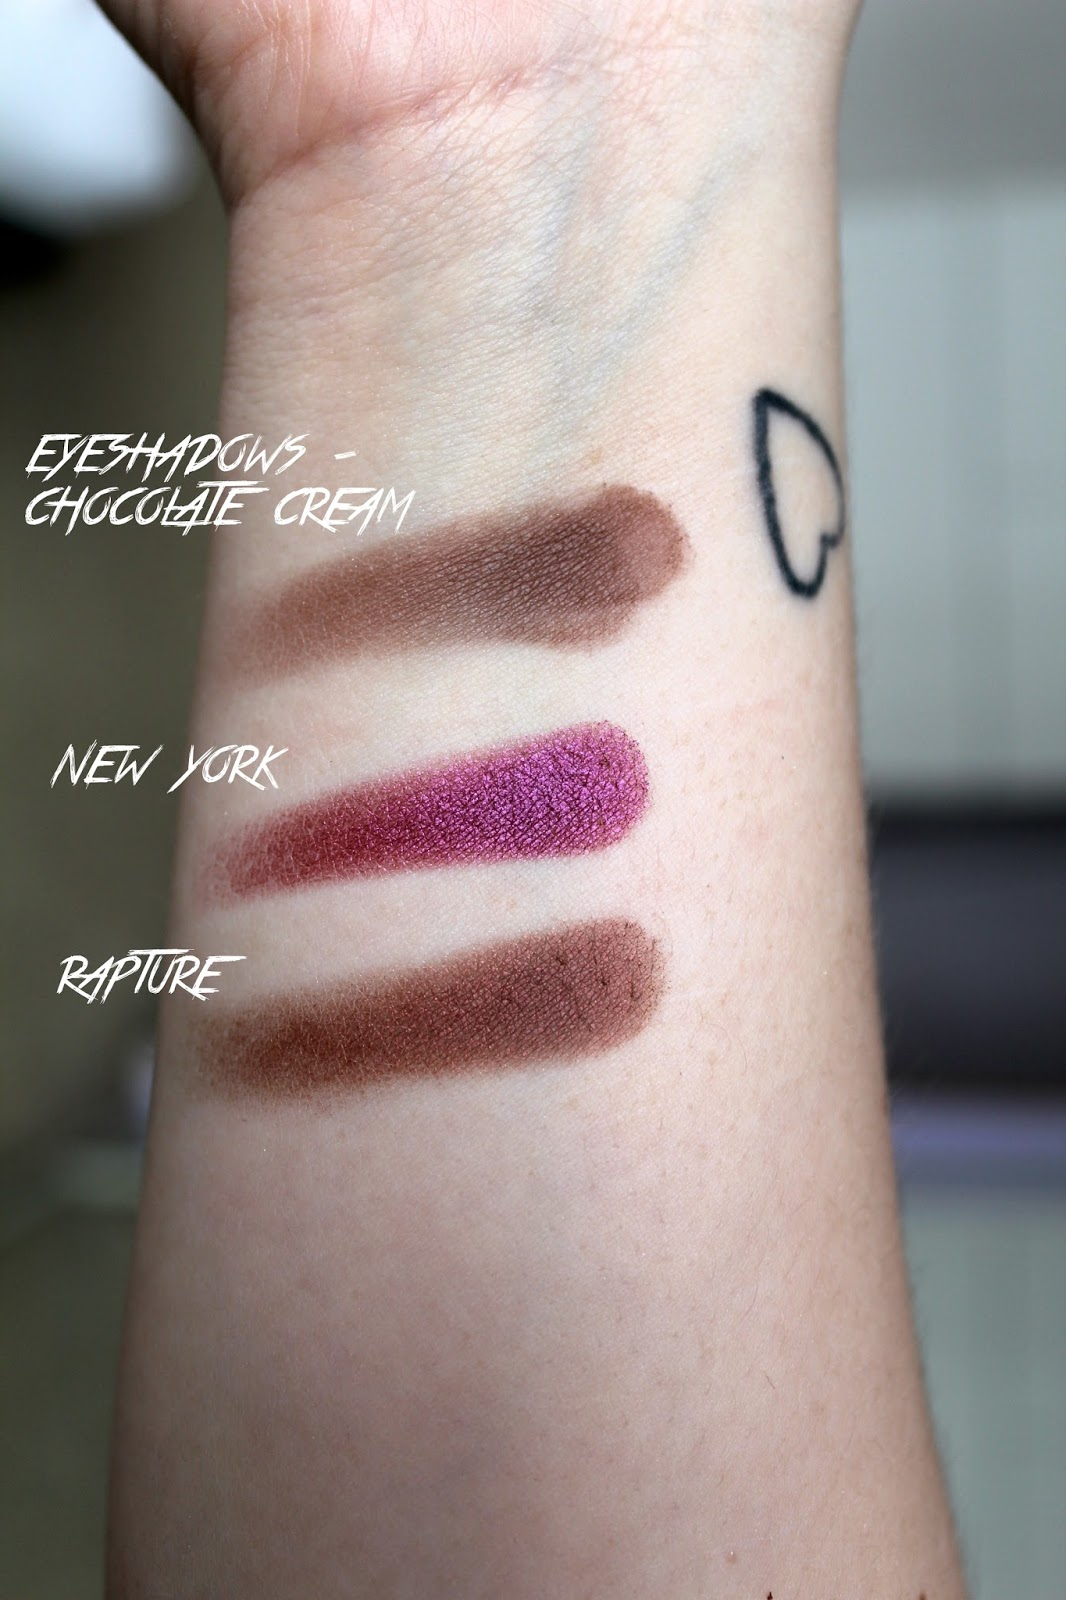 makeup obsession, custom palette, what's in my makeup obsession palette, swatches, reviews, rapture, chocolate cream, new york